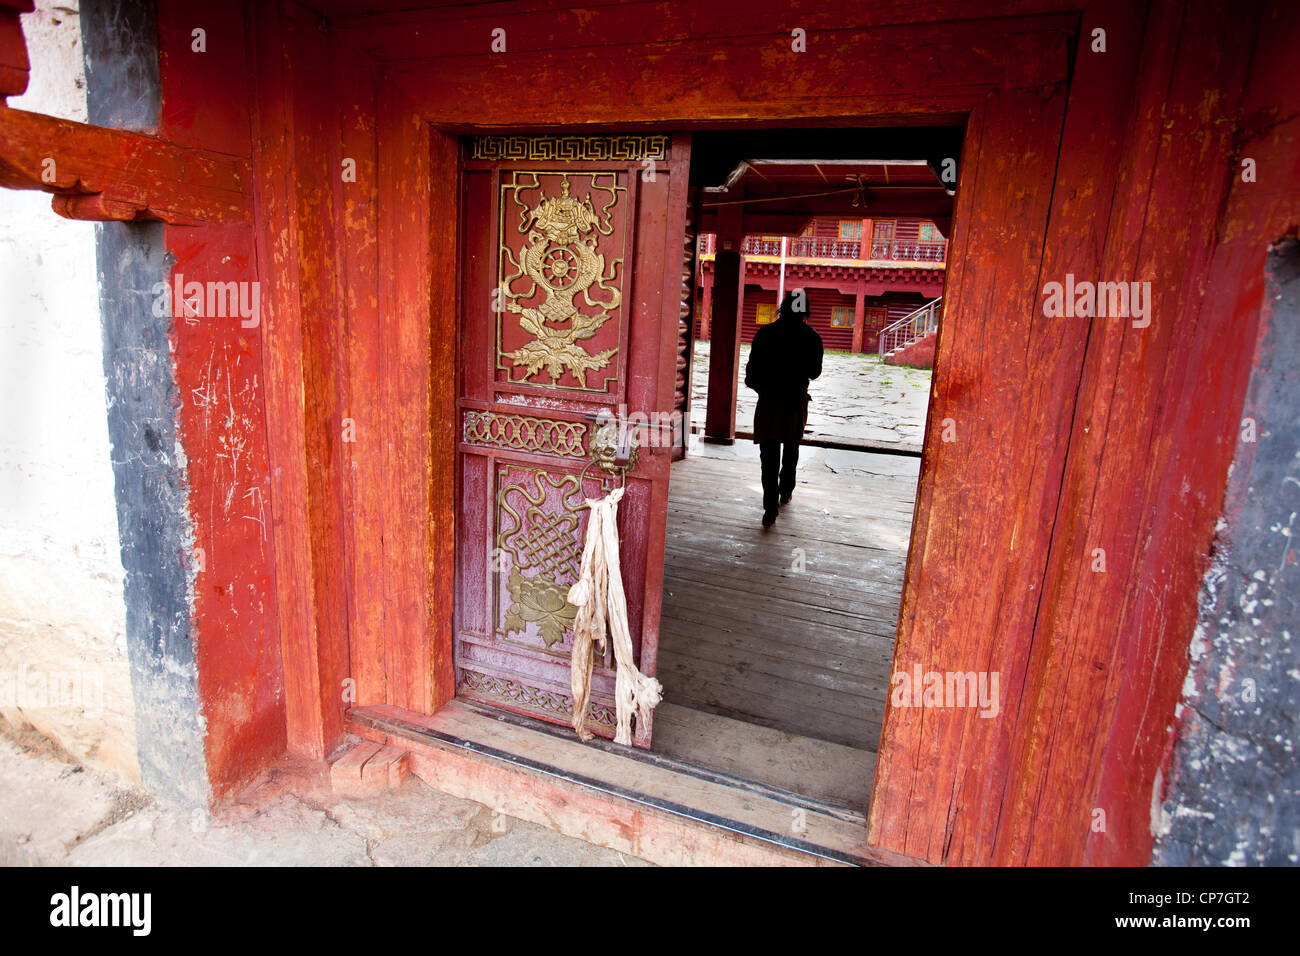 Door of monastery Litang western China Asia - Stock Image